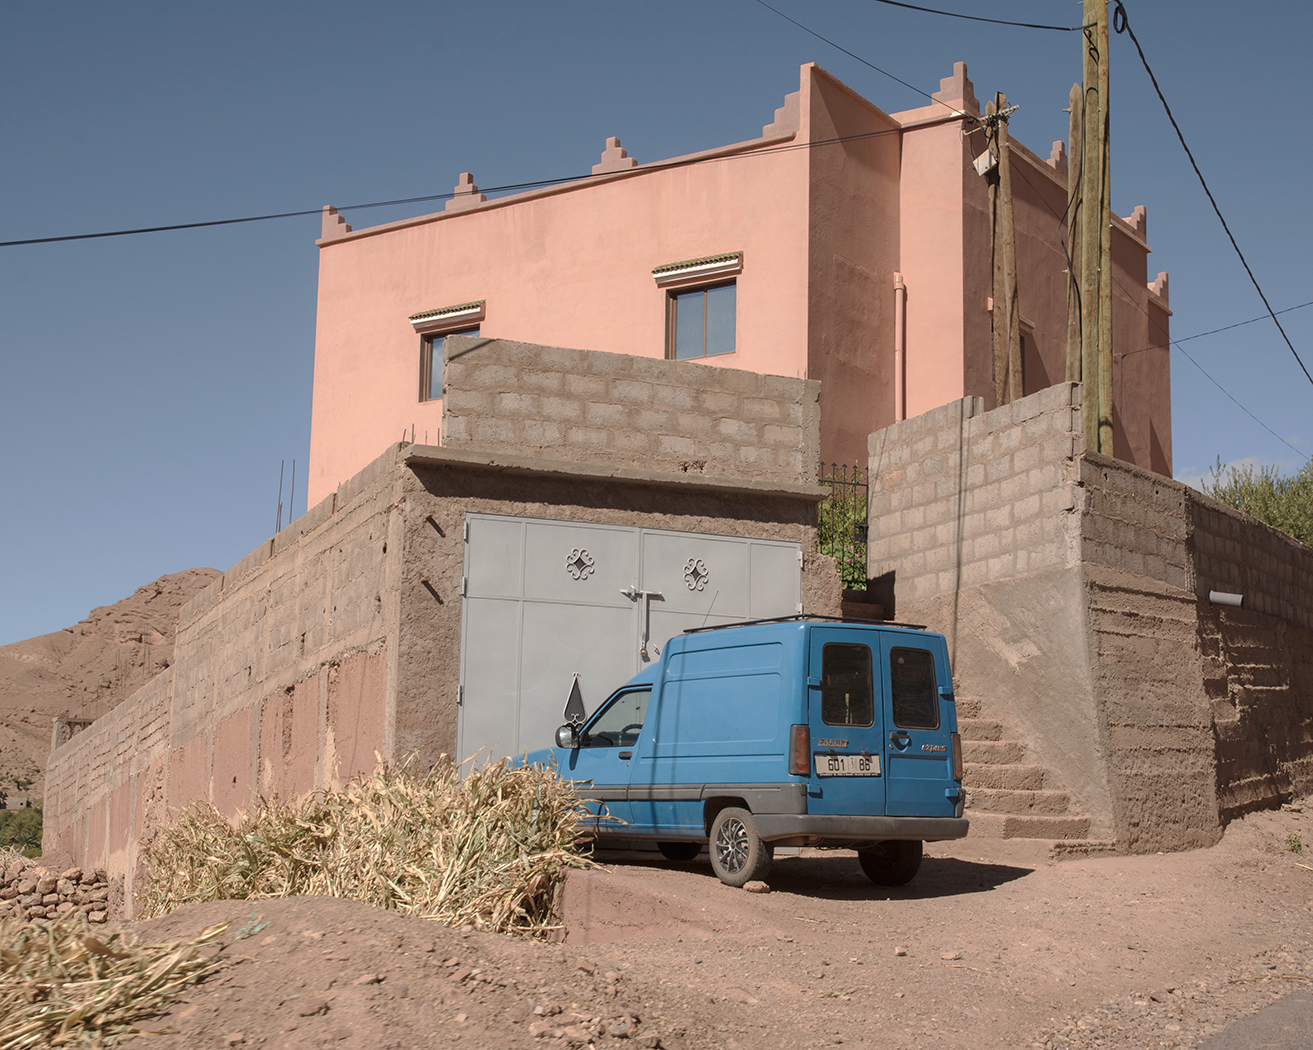 A Blue Truck in the Dades Valley